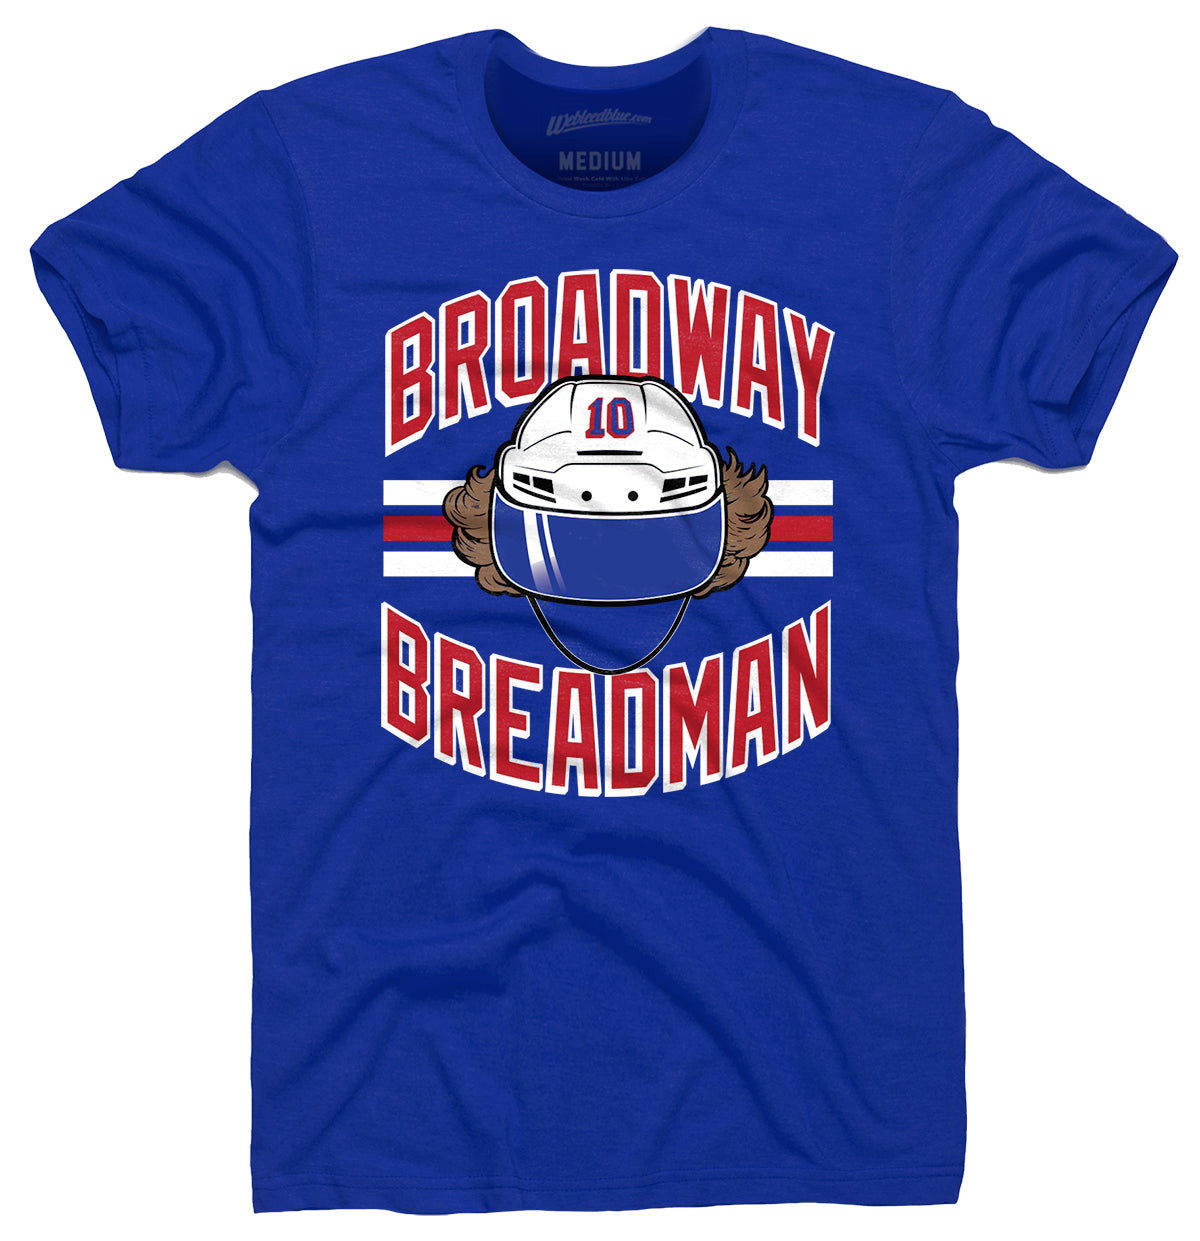 Broadway Breadman | Men